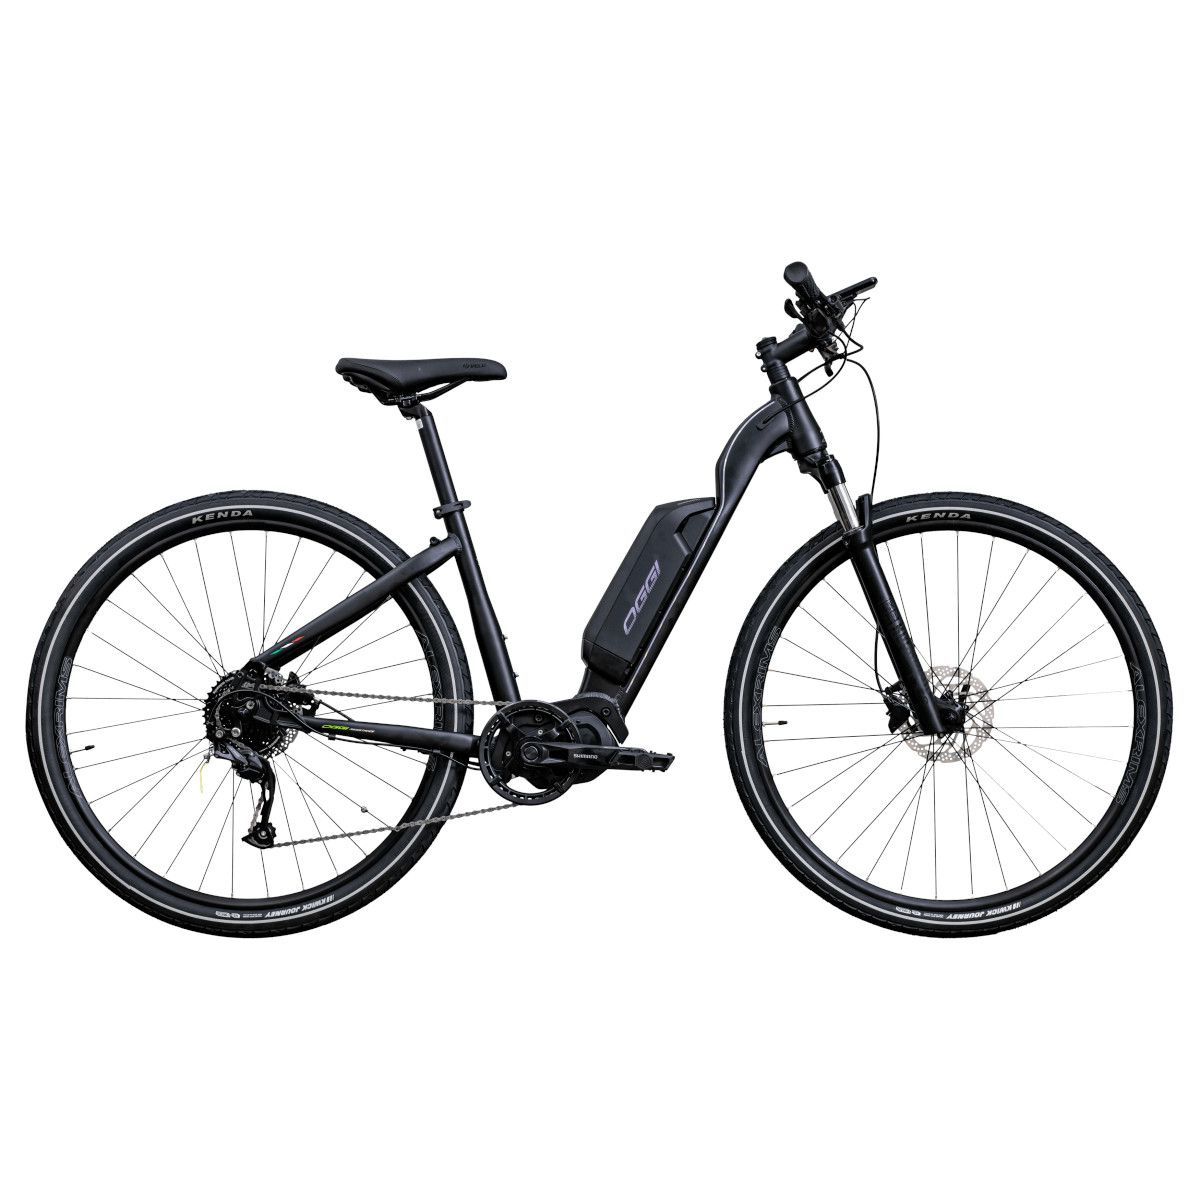 E- Bike Flex 700 Steps 9v Oggi Pedal Assistido